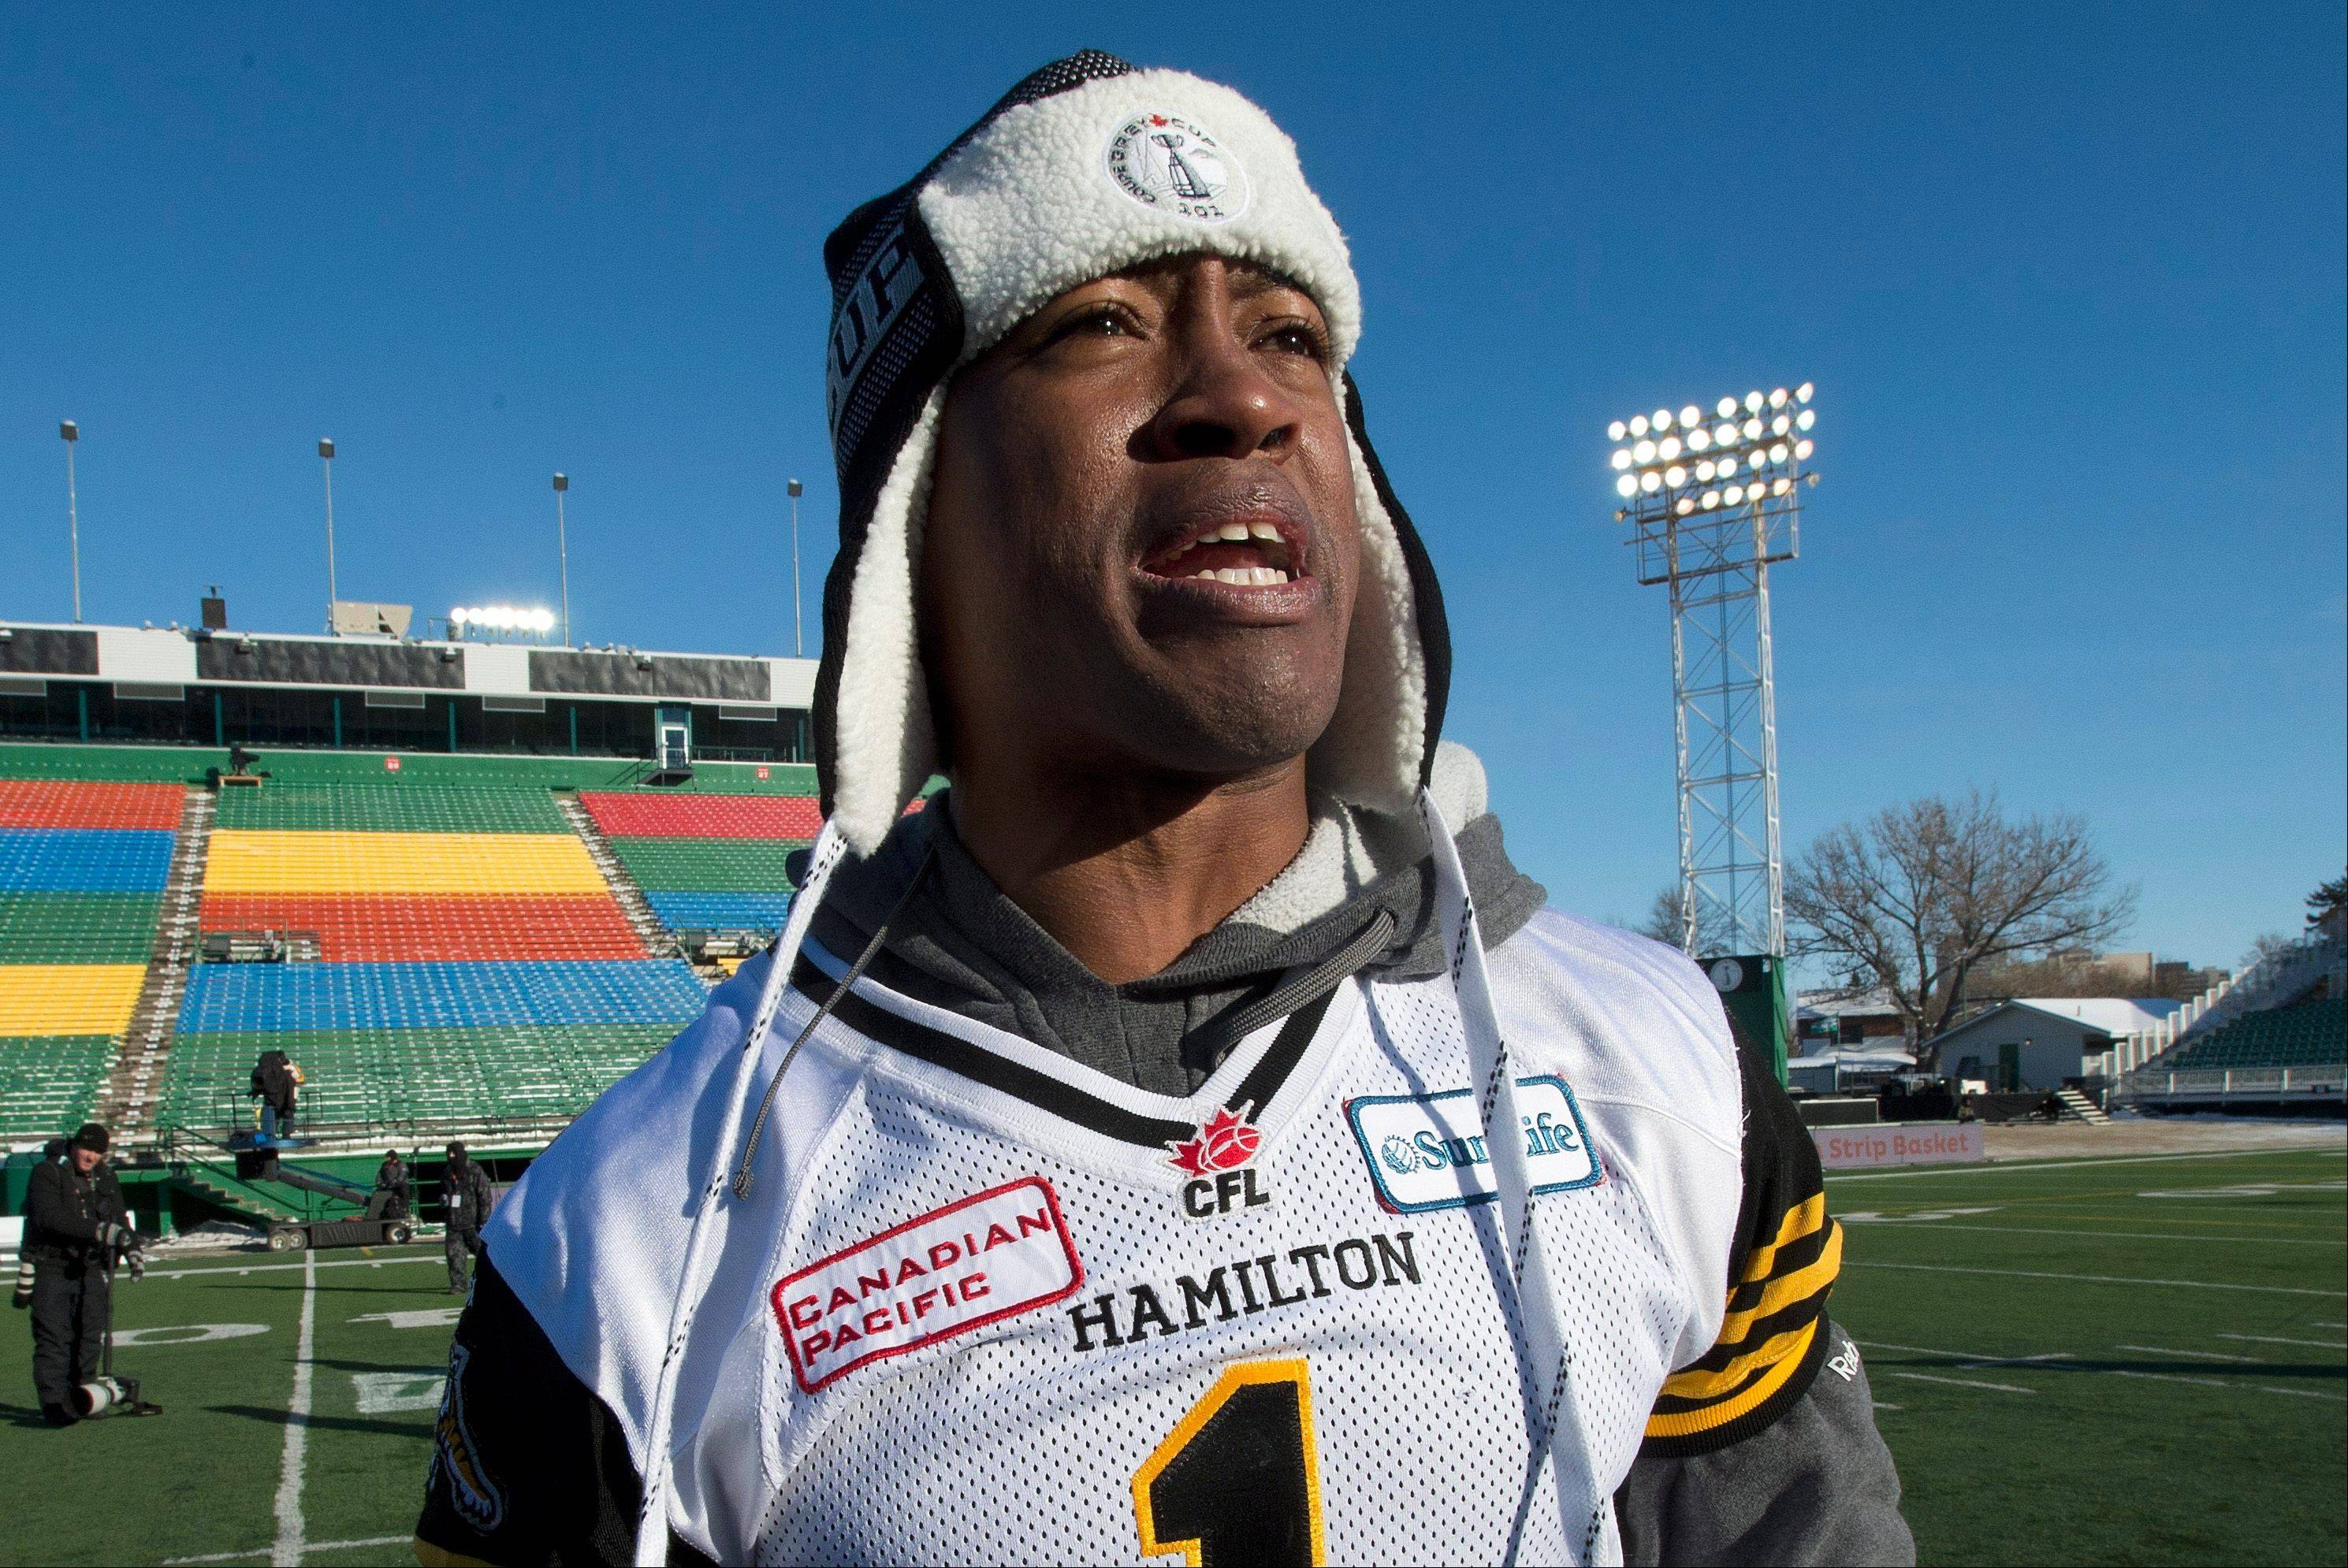 Canadian Football League's Hamilton Tiger-Cats quarterback Henry Burris, who once played for the Chicago Bears, cheers teammates during their practice Saturday. The Saskatchewan Roughriders play the Hamilton Tiger-Cats in the 101st Grey Cup on Sunday.